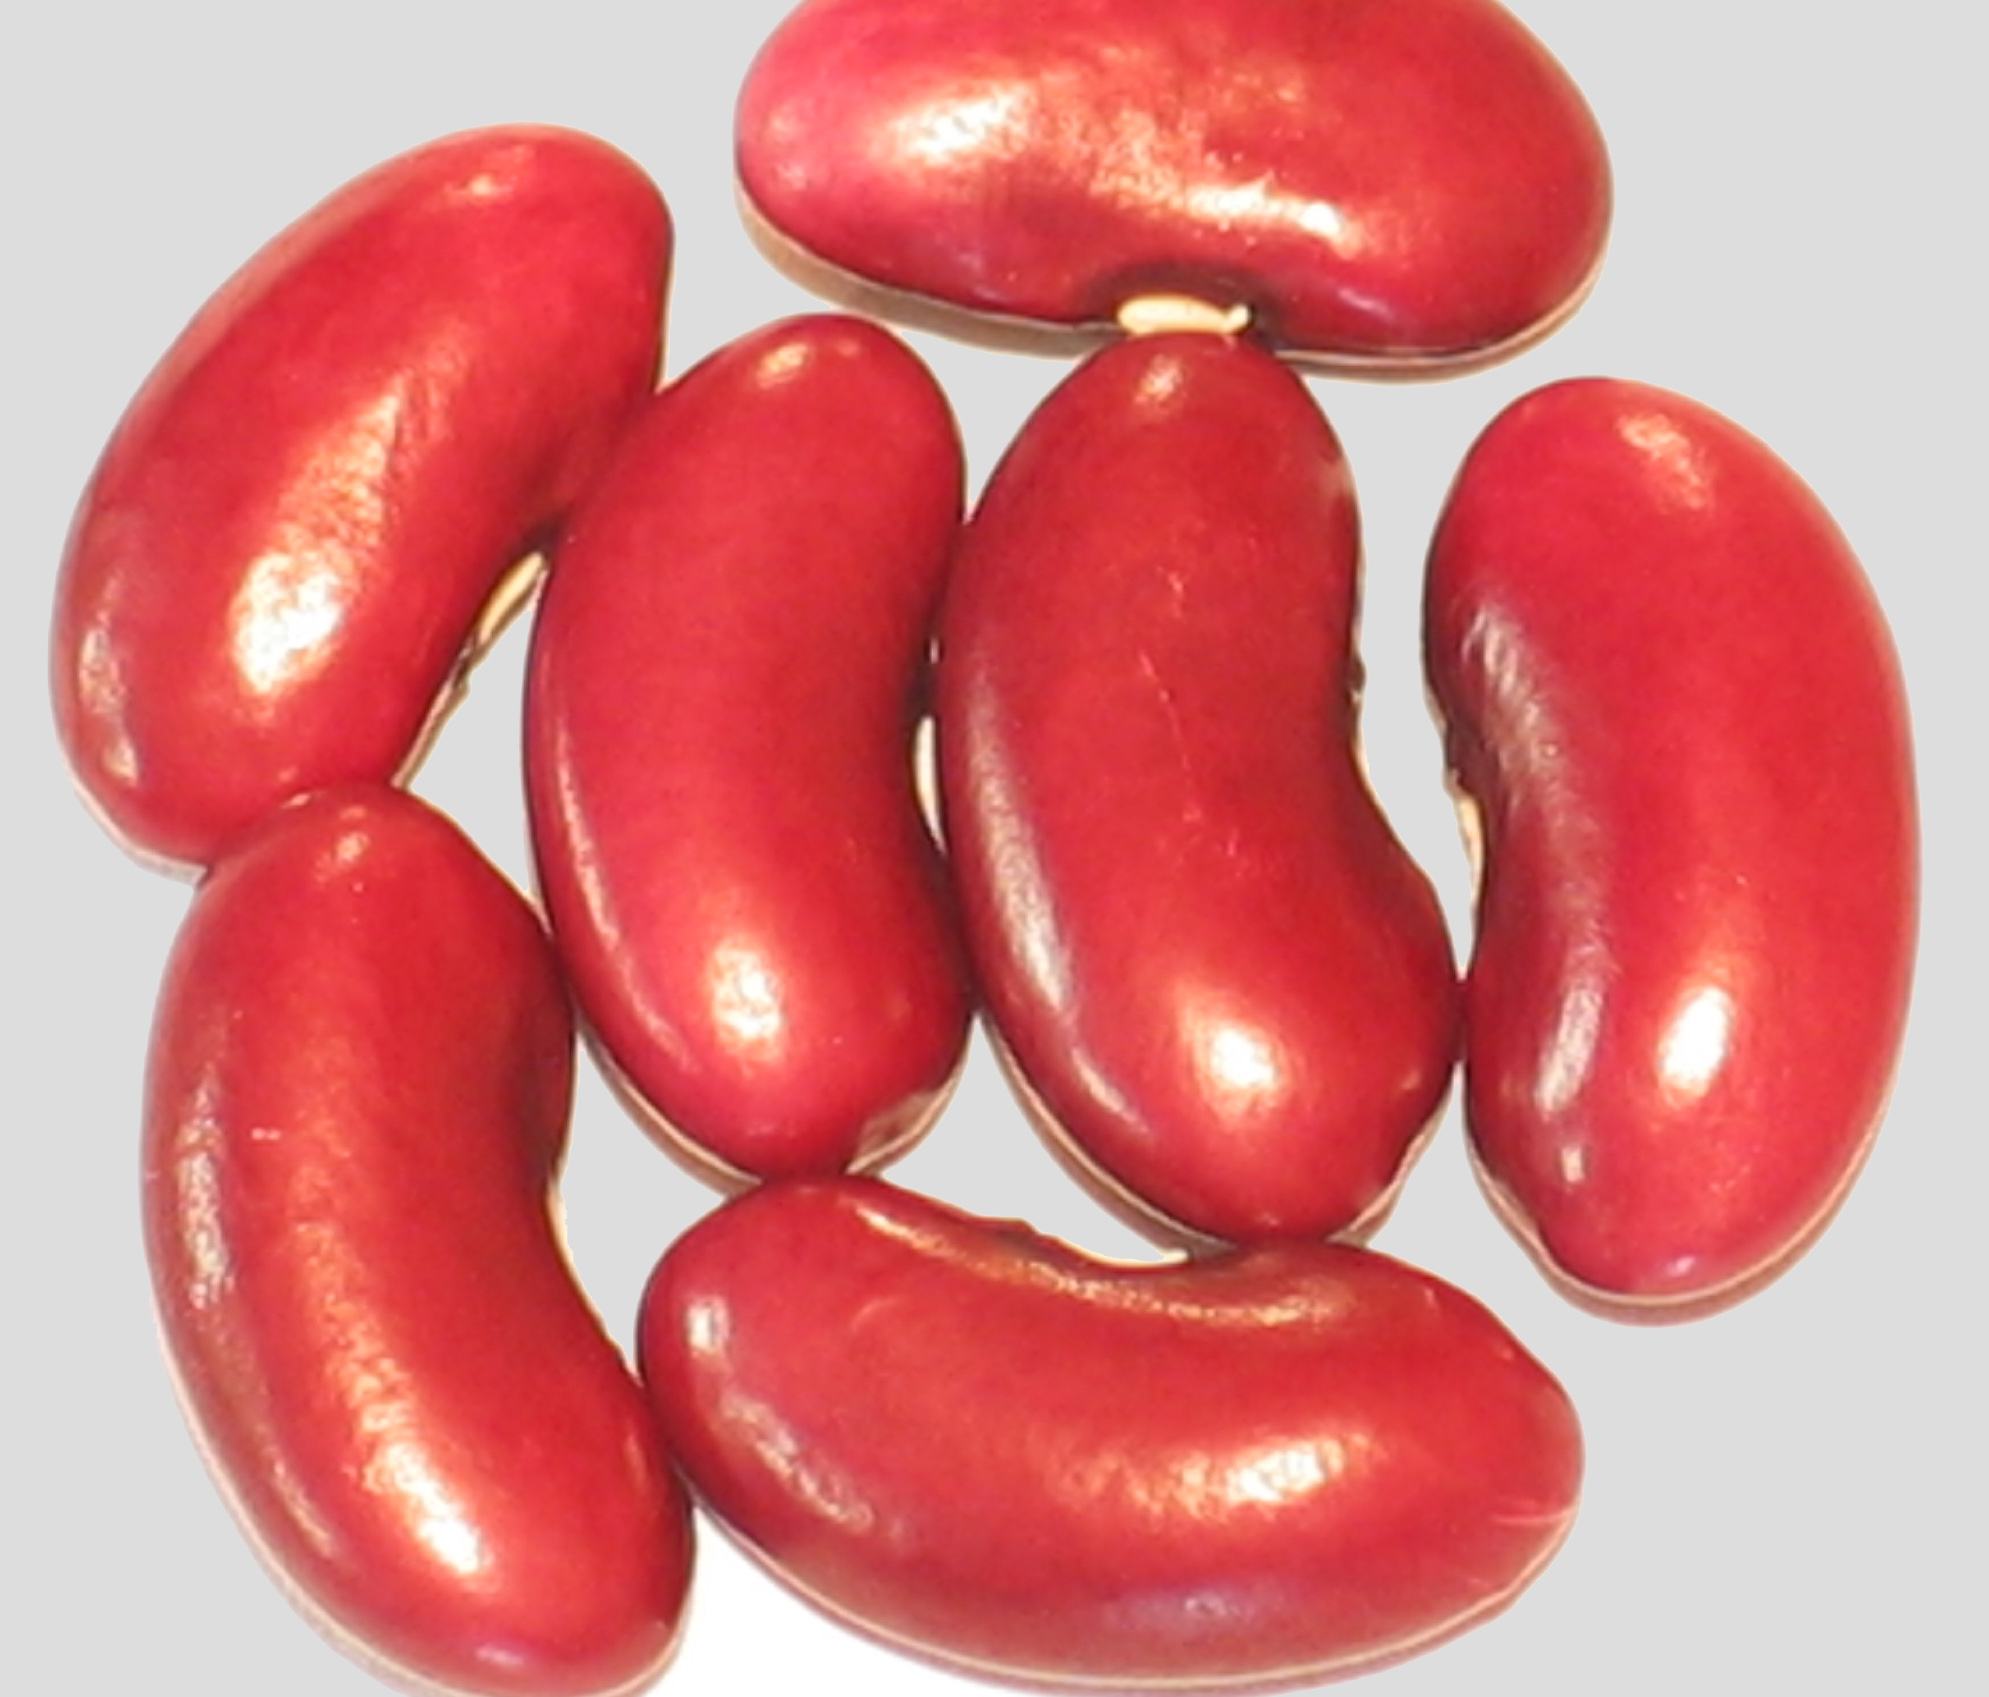 image of Red Rajma beans